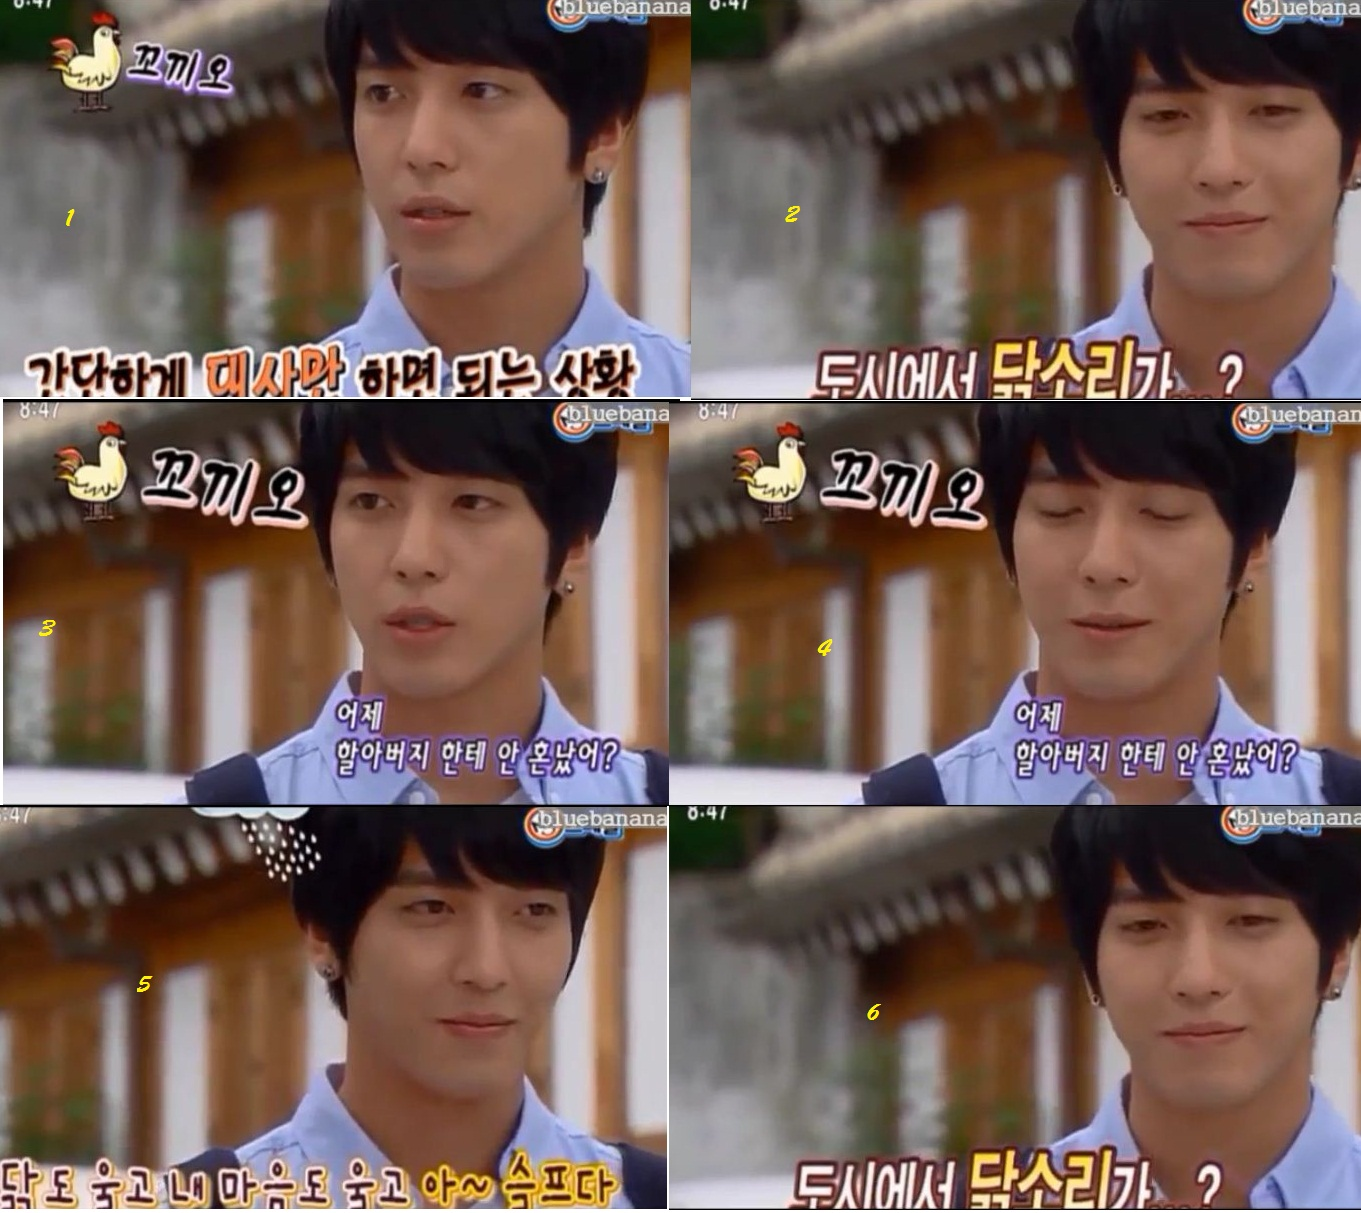 Days Of Live NG Seru HEARTSTRINGS JUNG YONG